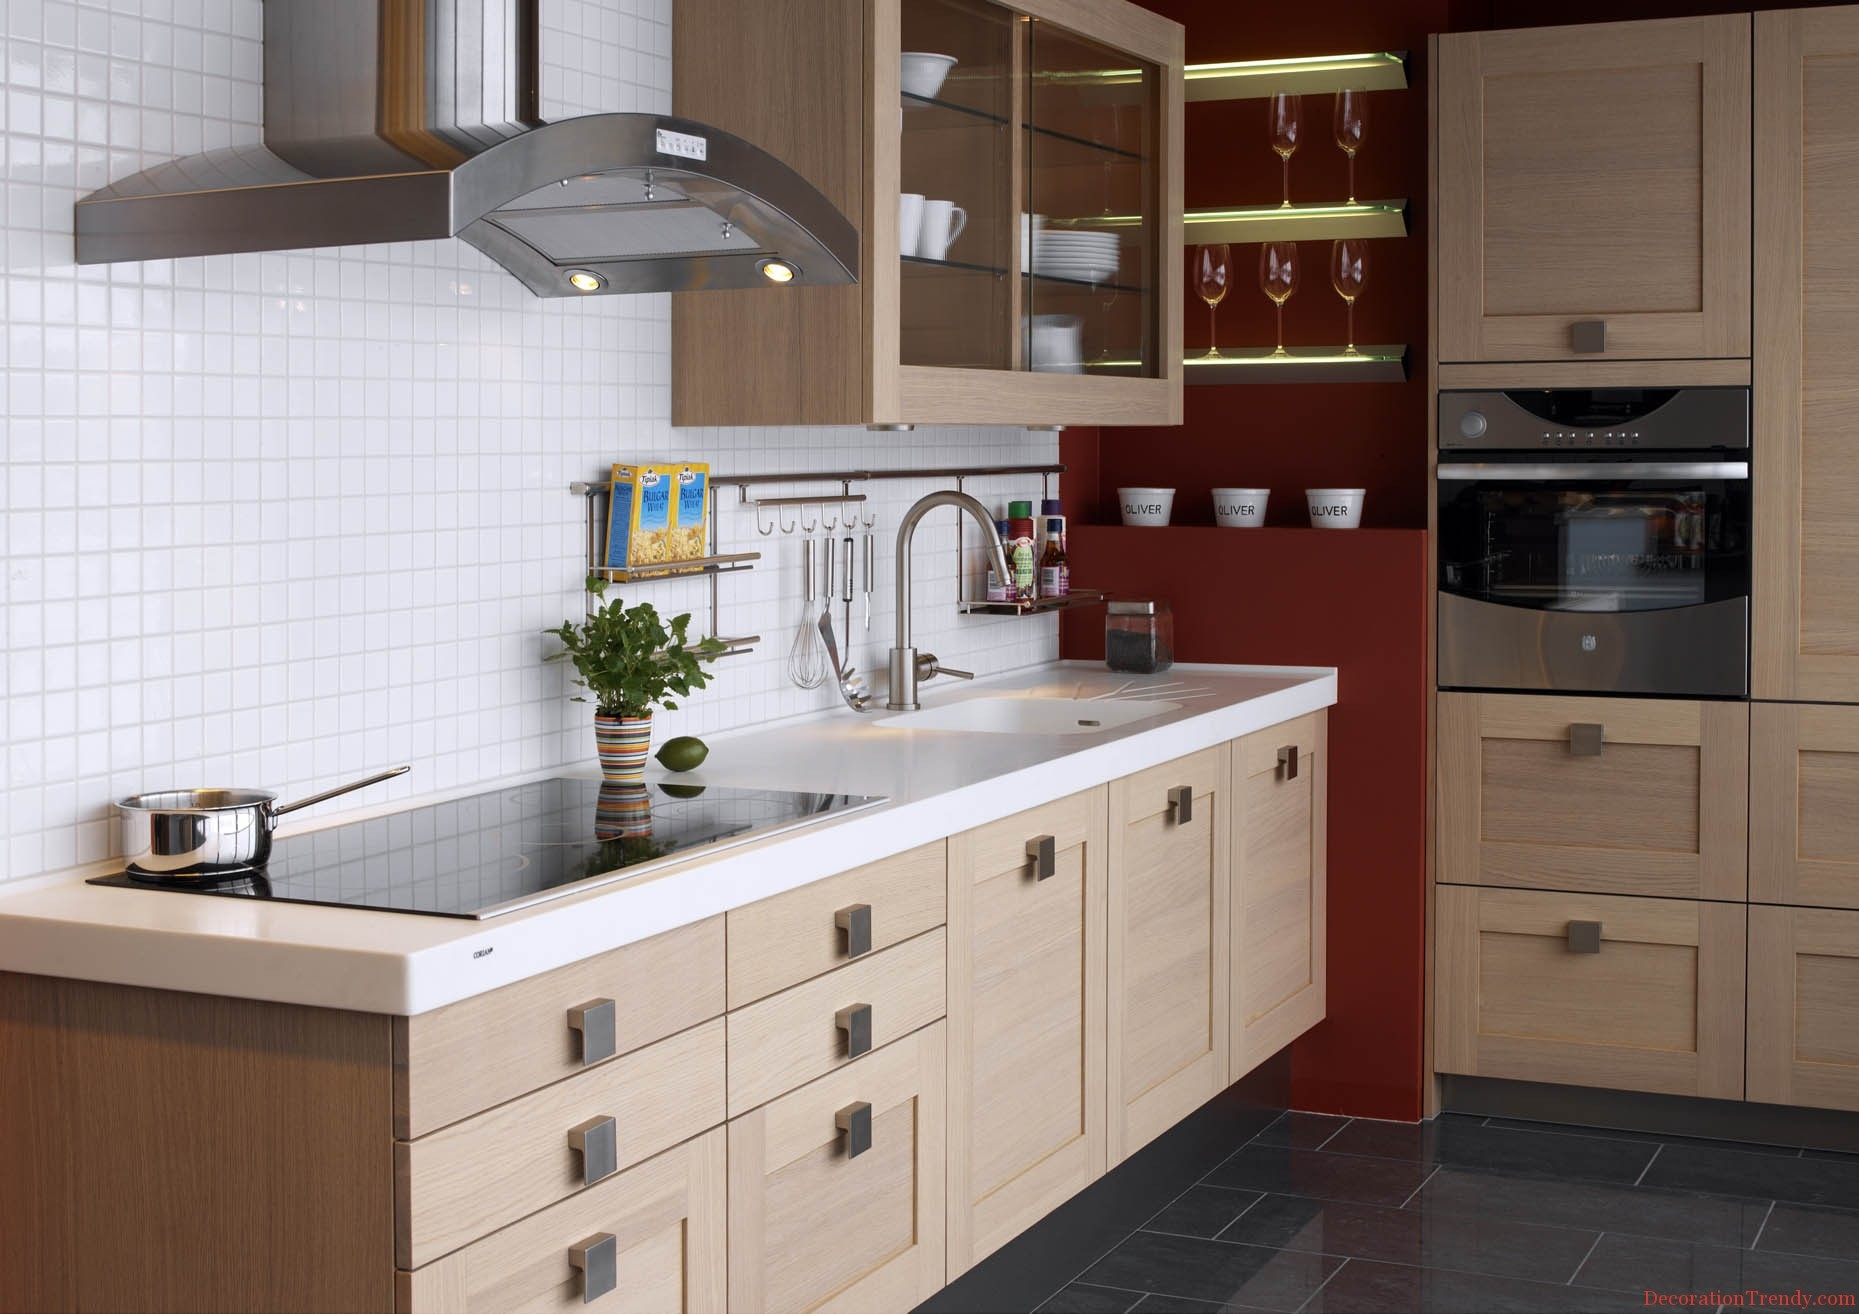 kitchen cabinets ideas for small kitchen photo - 5